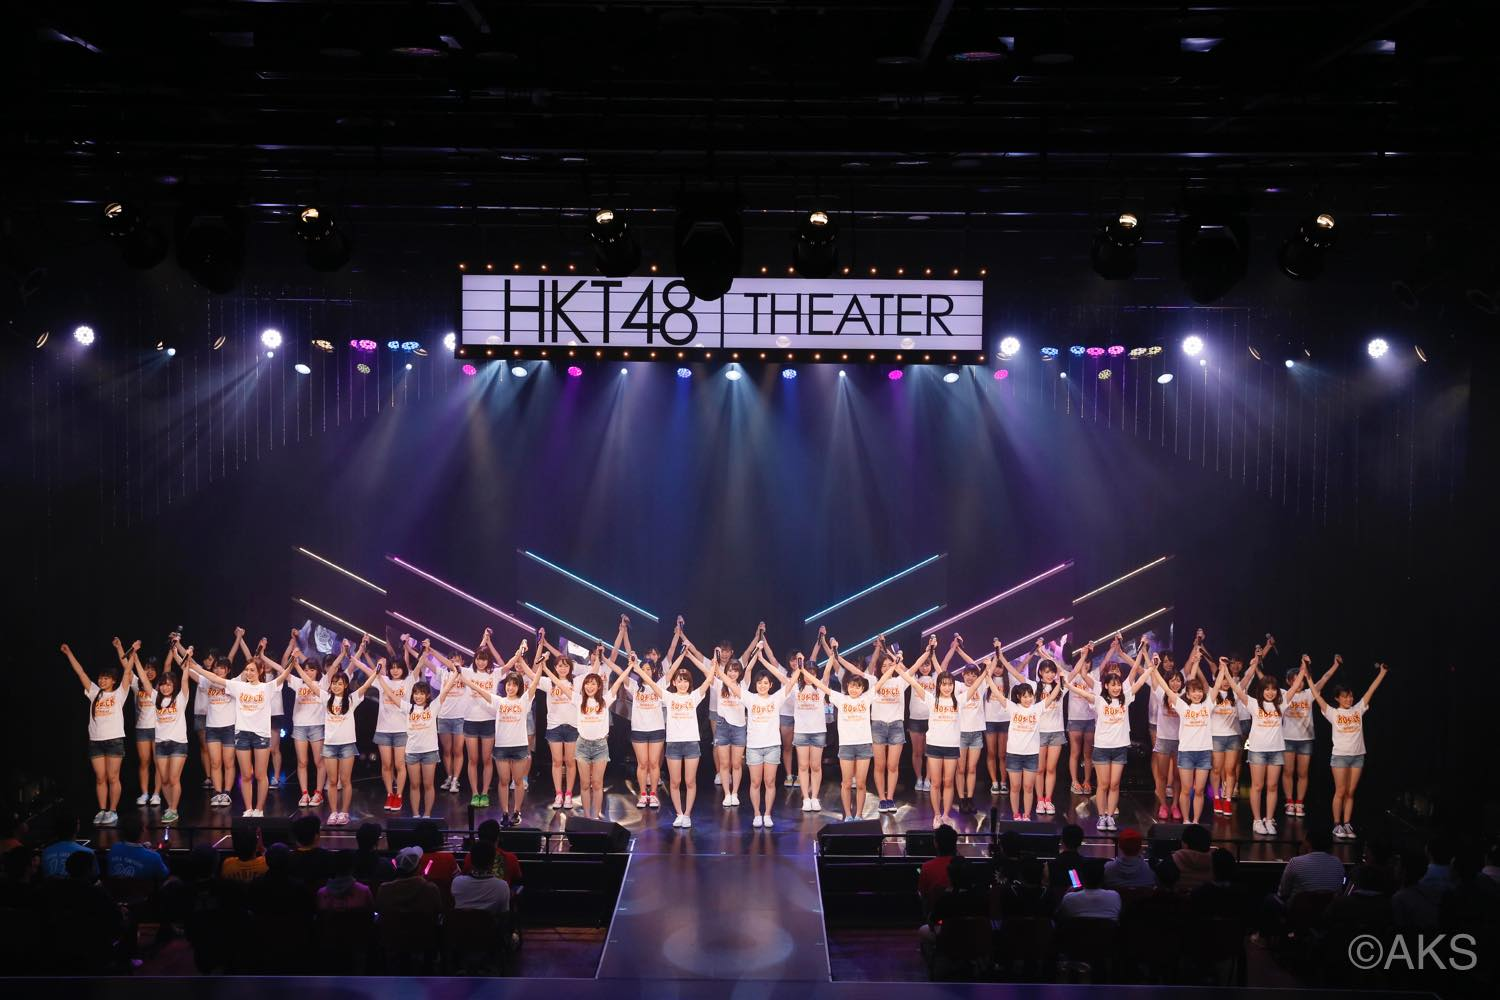 Koreaboo] These are the two AKB48 members confirmed for